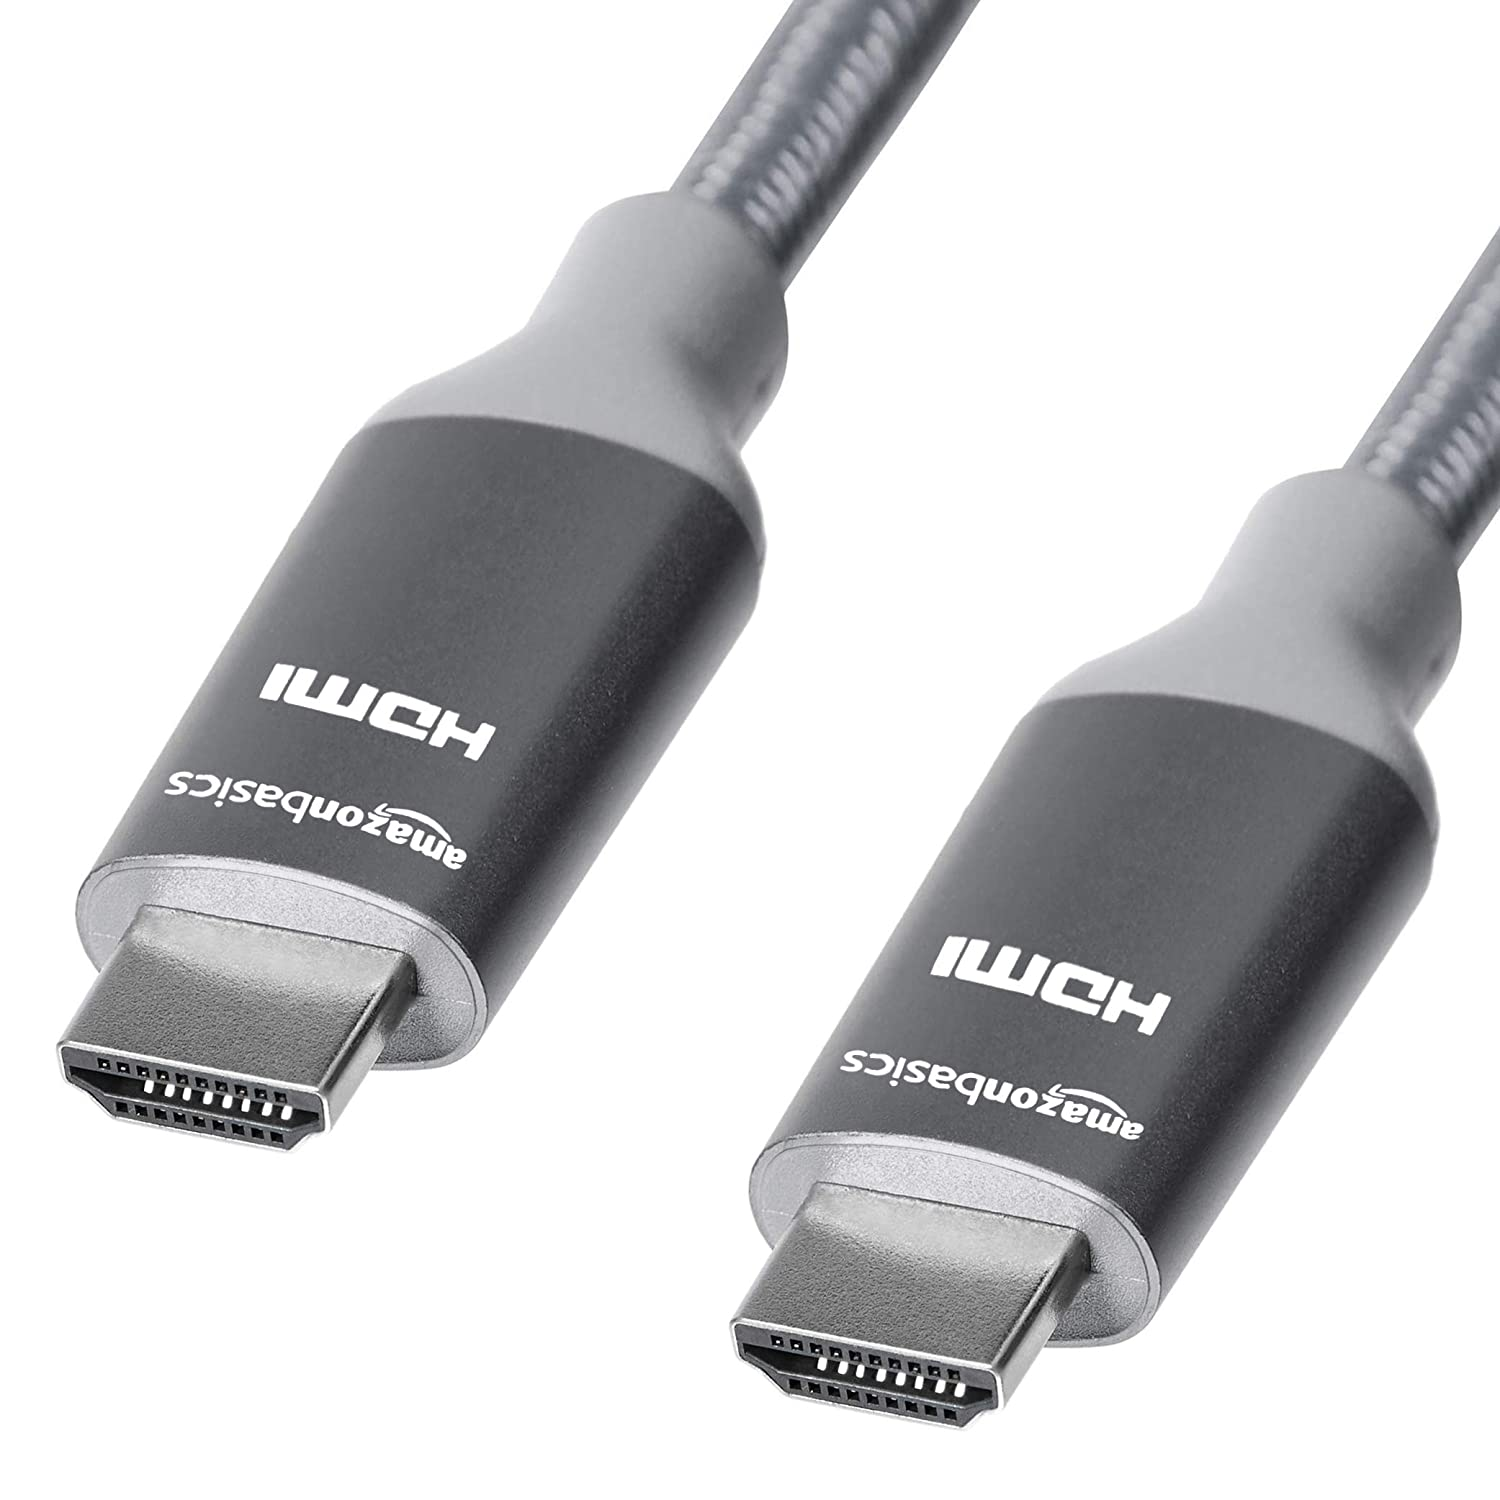 Gold 3 Feet Basics Premium High-Speed 4K HDMI Cable with Braided Cord